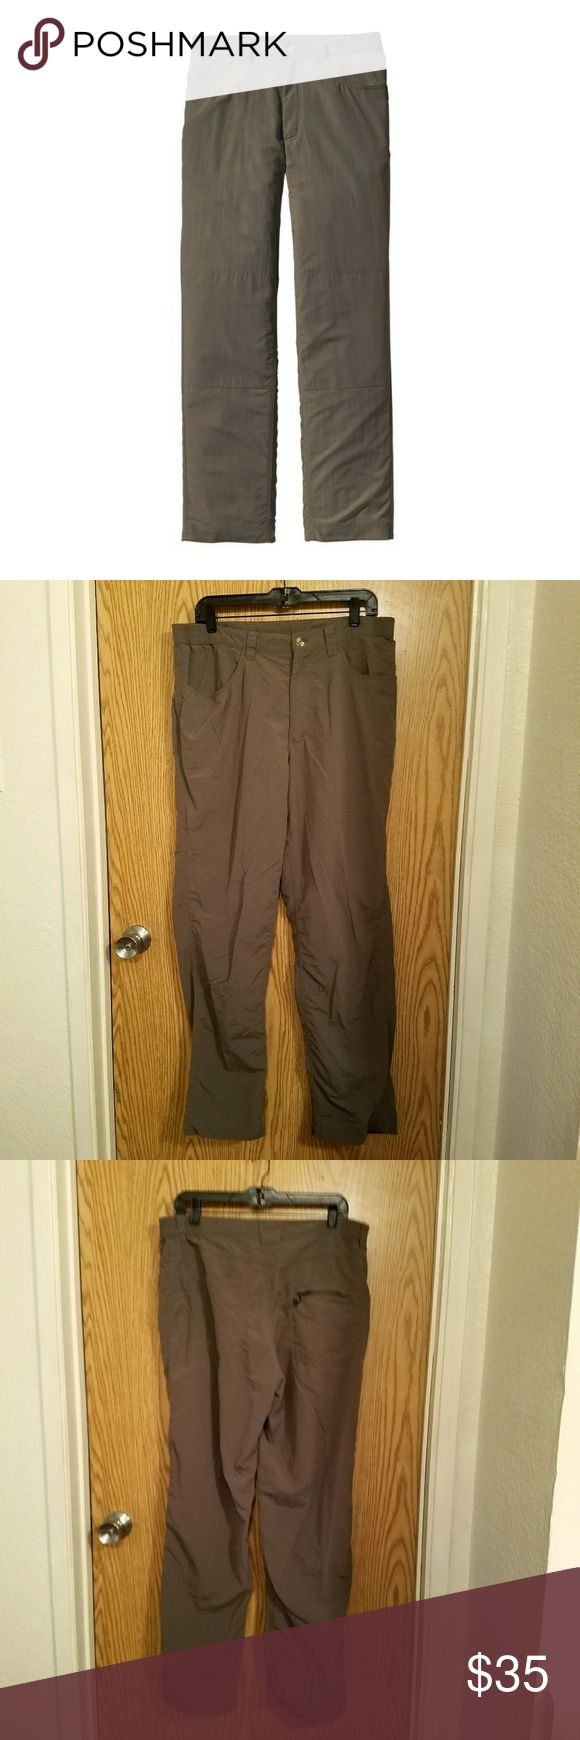 Men's Patagonia Home Waters pants. Made for fly fishing but great for hiking or even casual wear.  Color is stone and is the same as in first picture.  Button fly and partially elastic waistband. Excellent condition.  Color was hard to pick up on camera. Last two photos show the true color best. Patagonia Pants